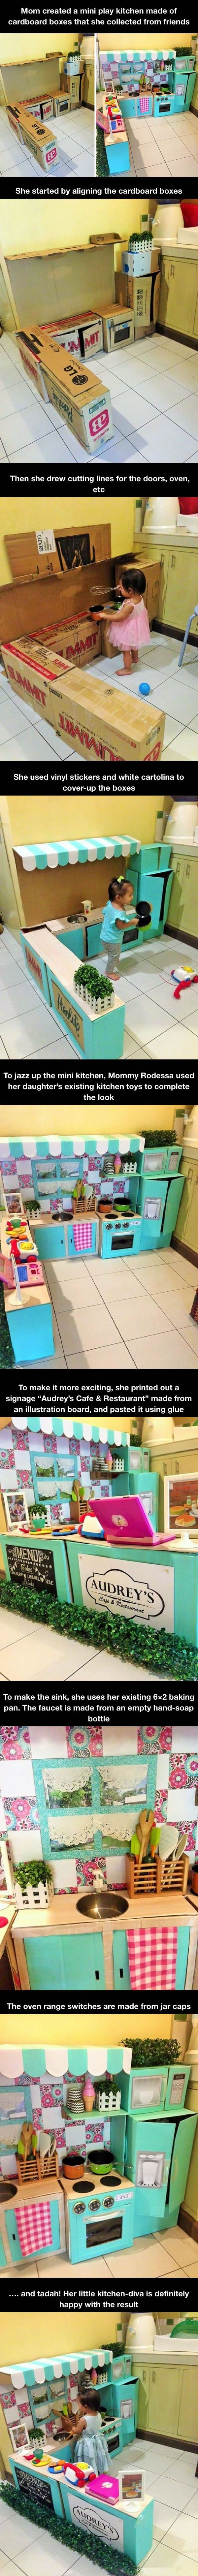 Mini play kitchen made of cardboard boxes